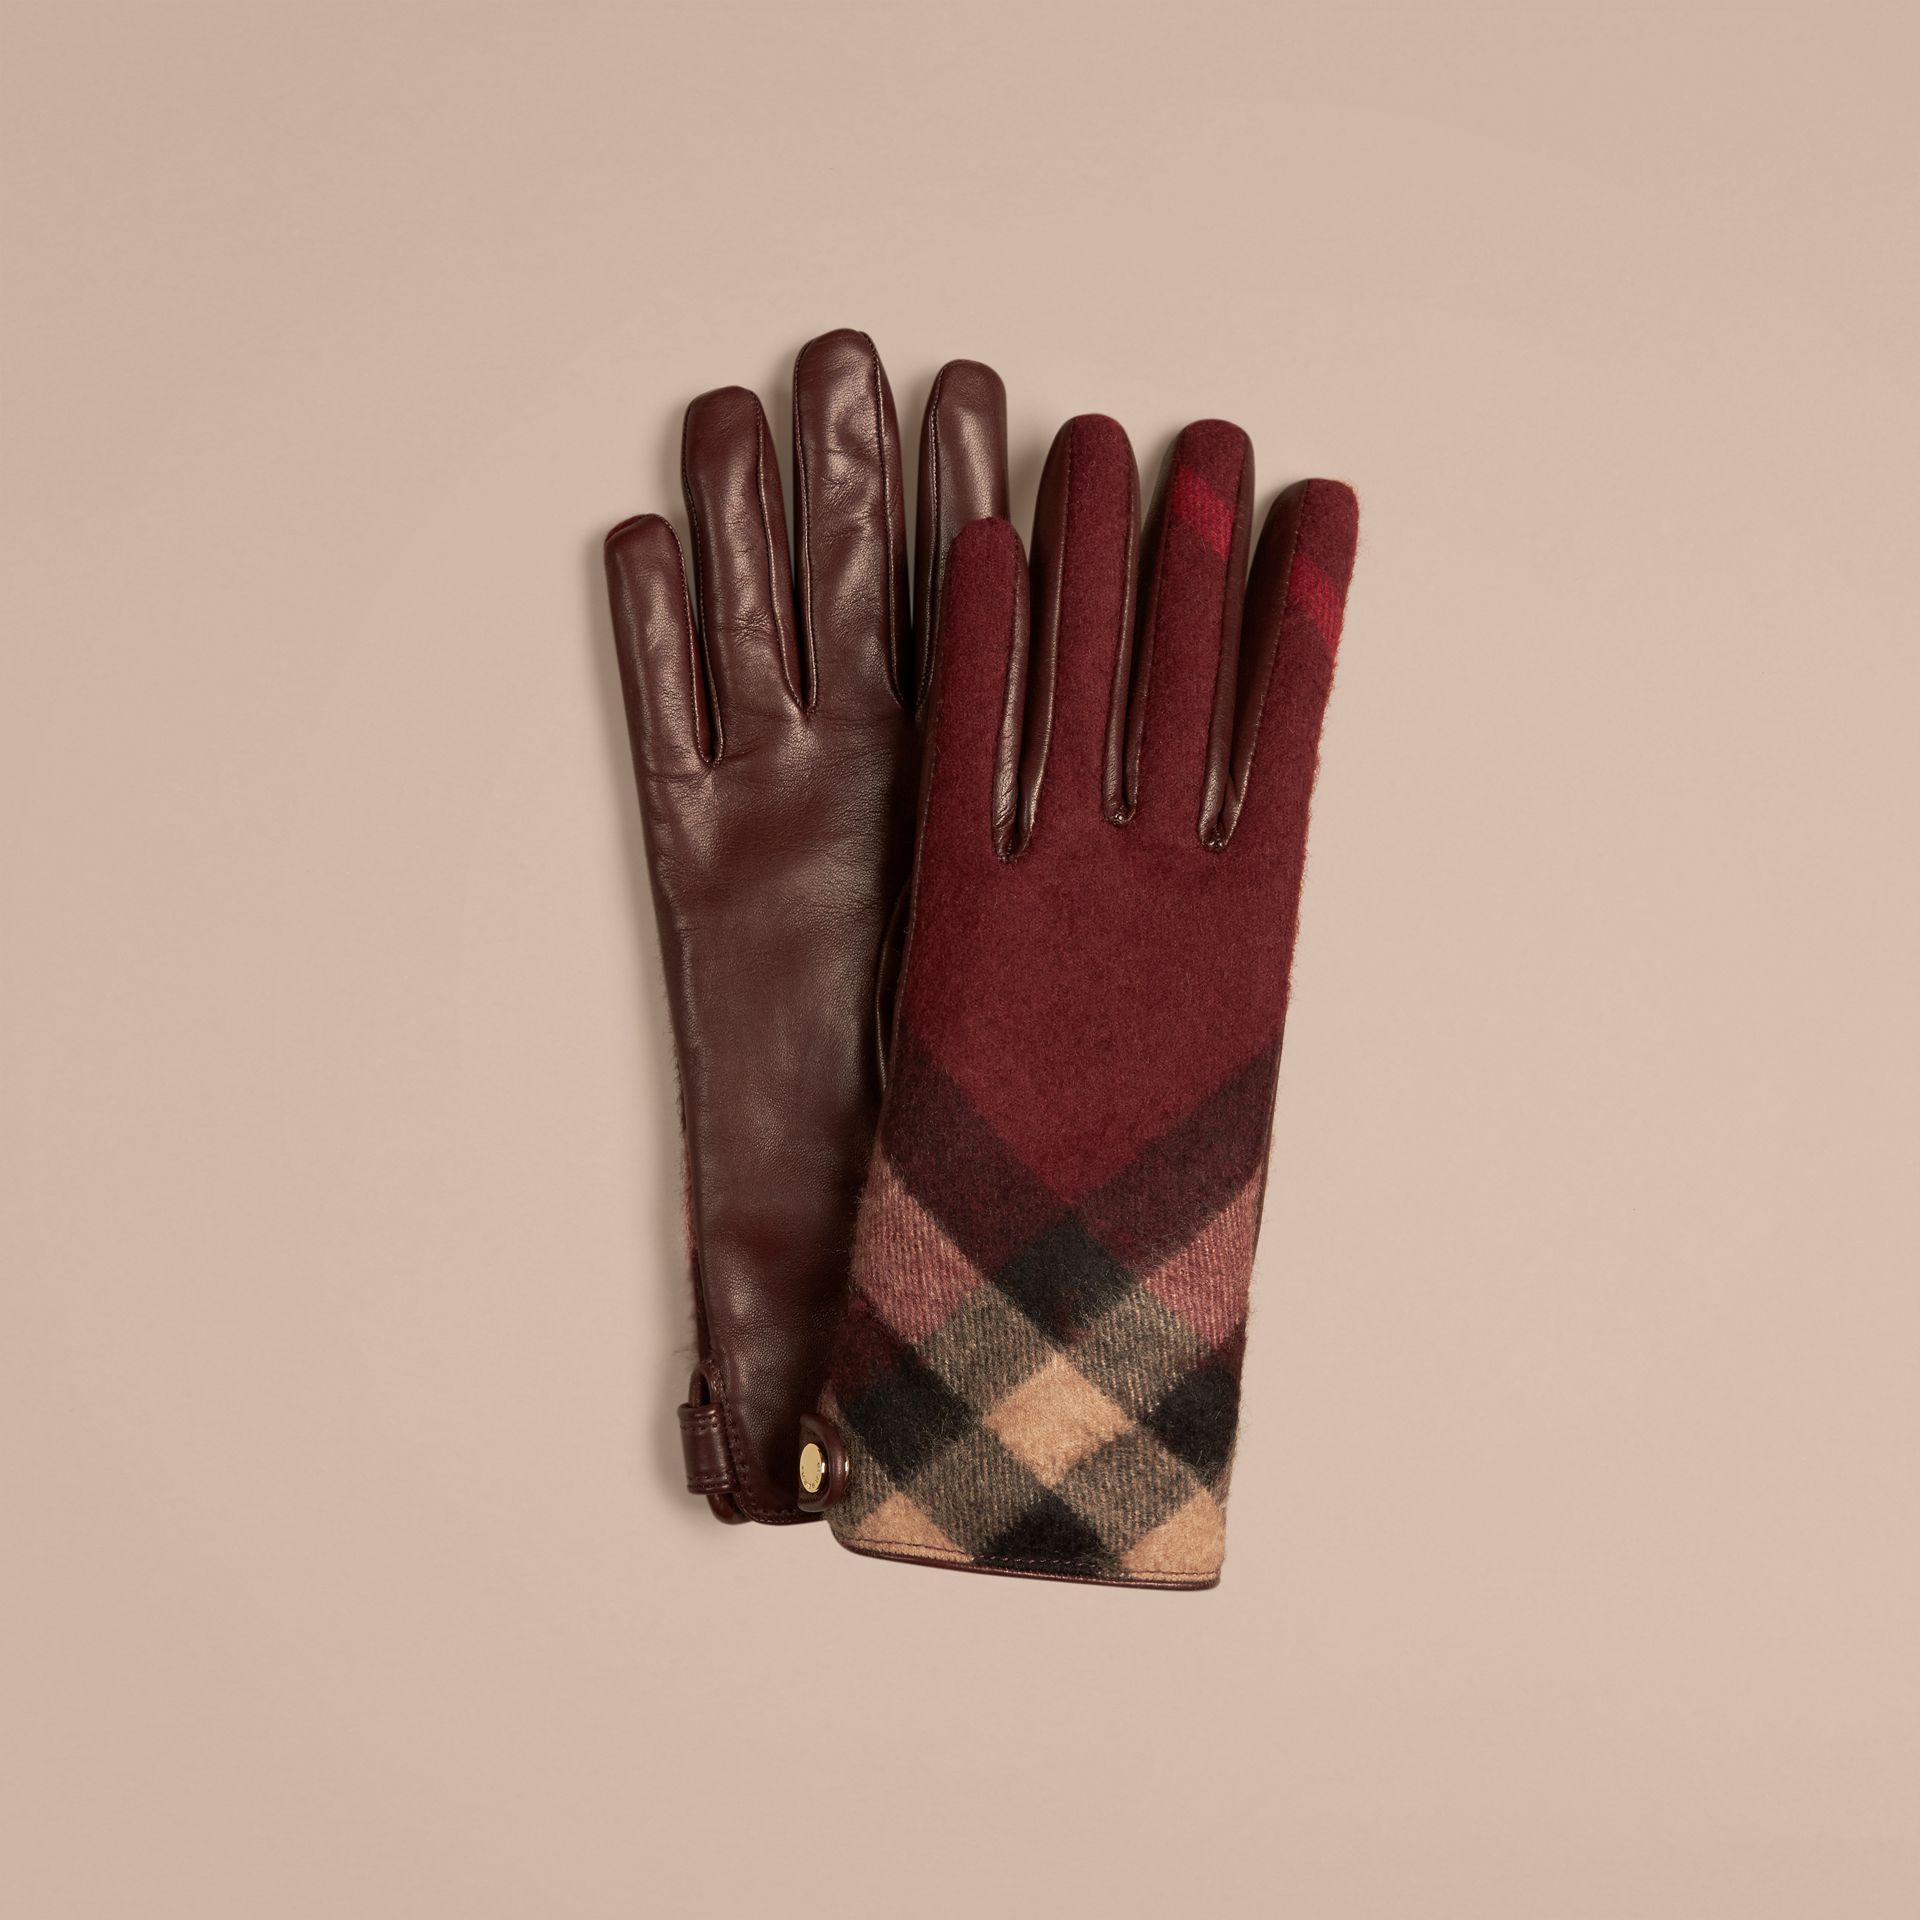 Leather and Check Cashmere Gloves in Claret - Women | Burberry - gallery image 1